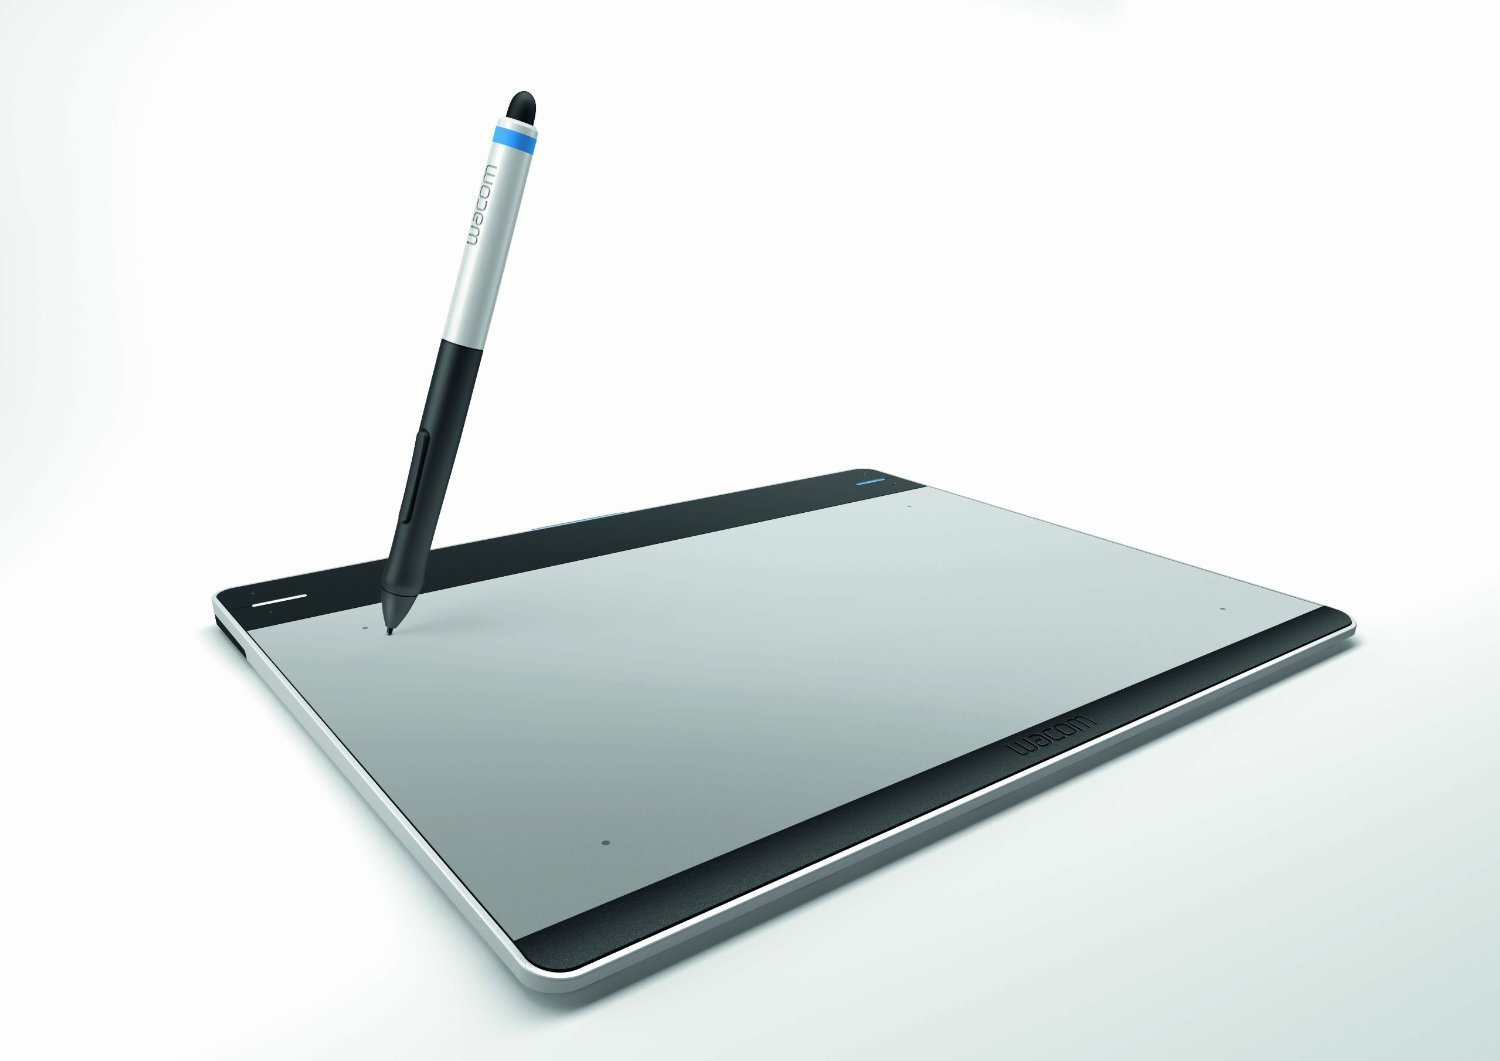 Wacom Intuos Pen and Touch CTH-680/S3 (Medium) - Best Reviews Tablet